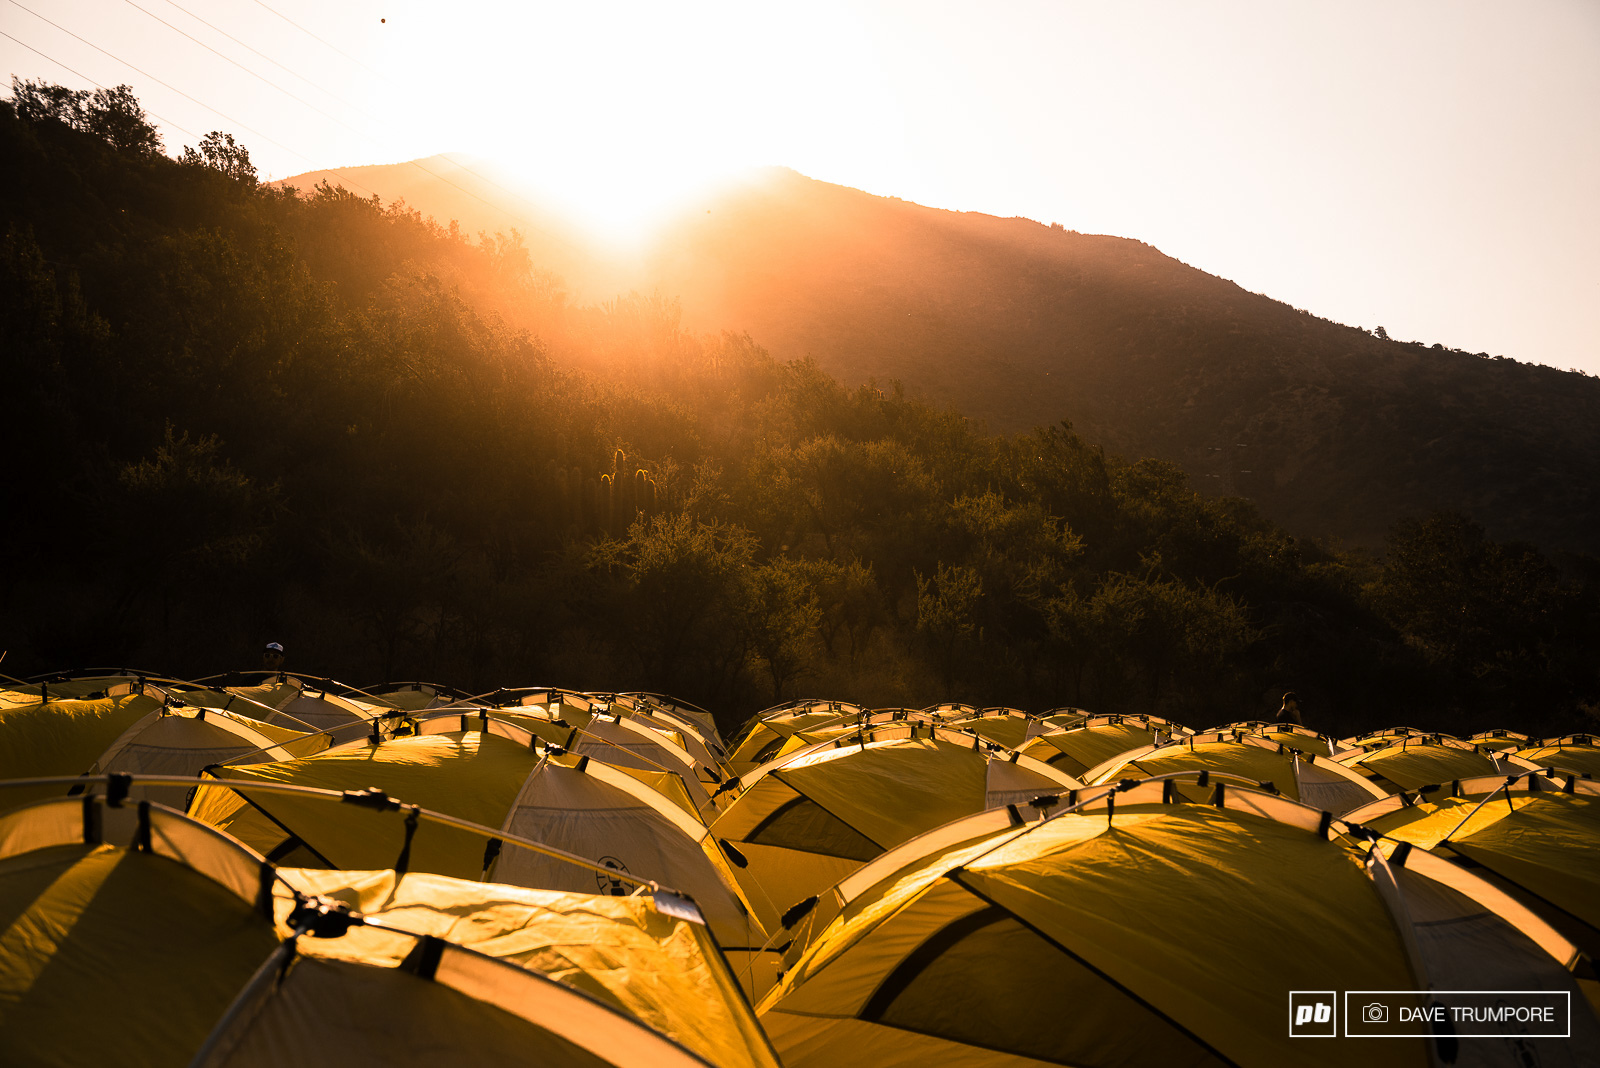 The sun sets on the tent city that has formed in a valley just below the Andes. When it rises again in the morning rcaers will head into the mountains for the first day of racing.